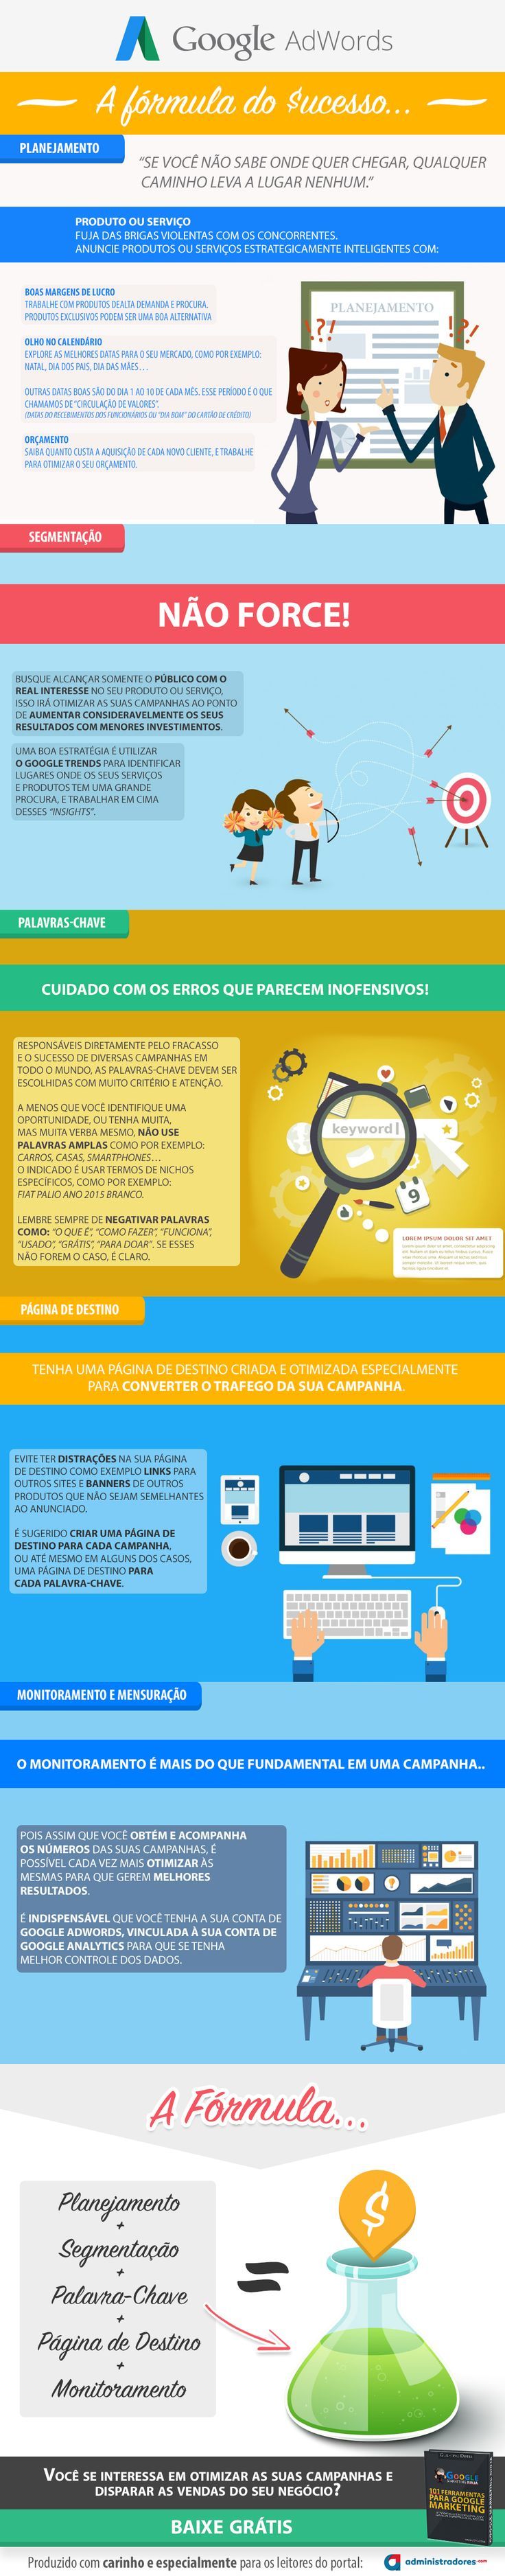 Infográfico: a fórmula do sucesso para Google AdWords - Artigos - Marketing - Administradores.com